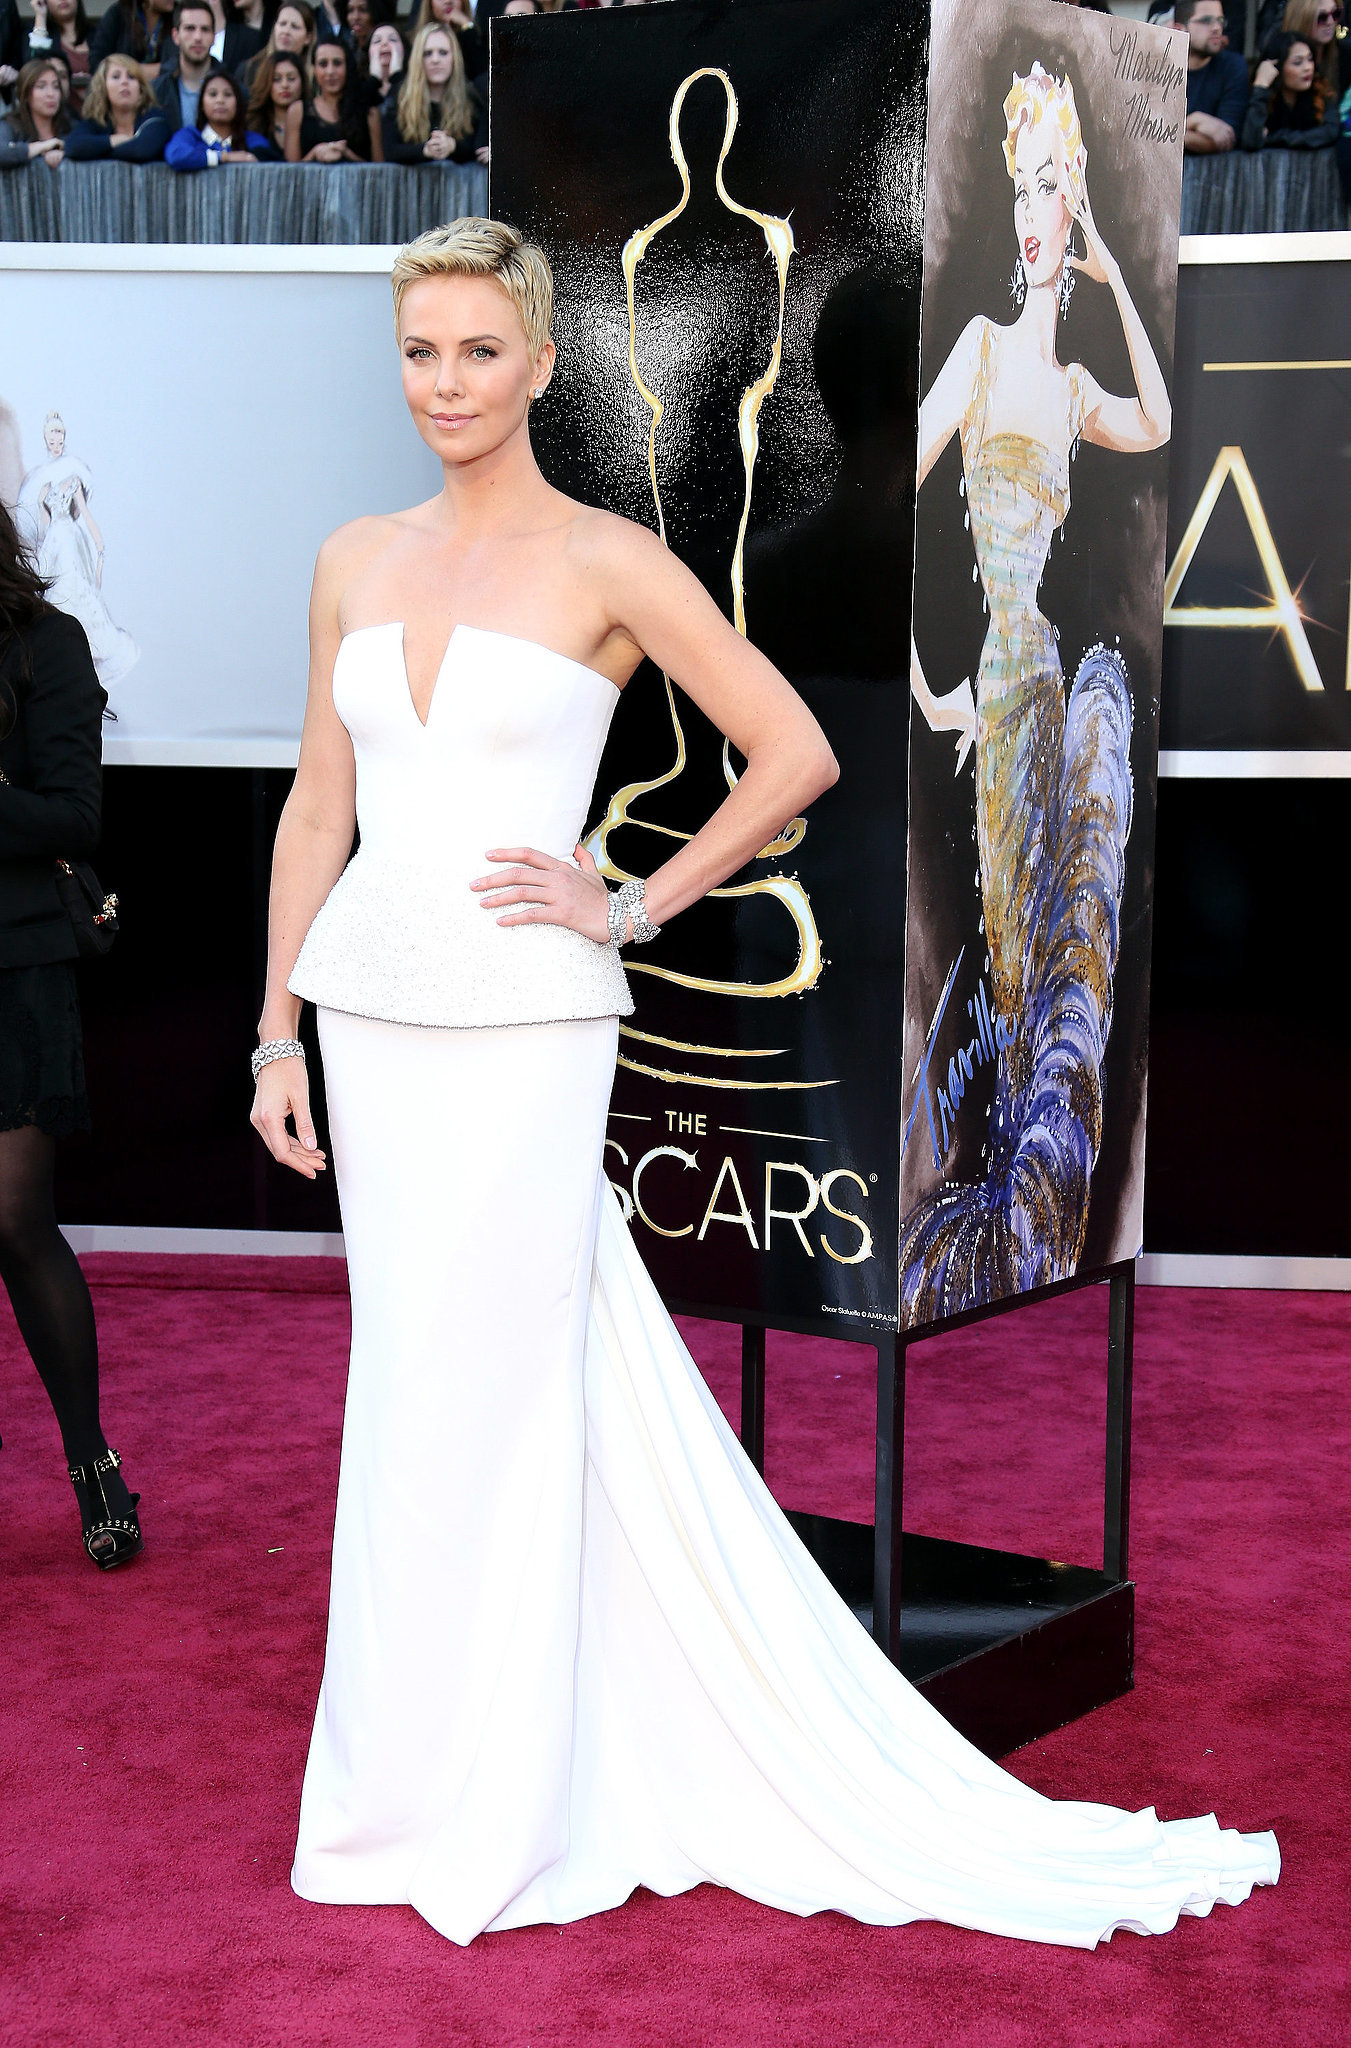 Charlize Theron at the 2013 Academy Awards